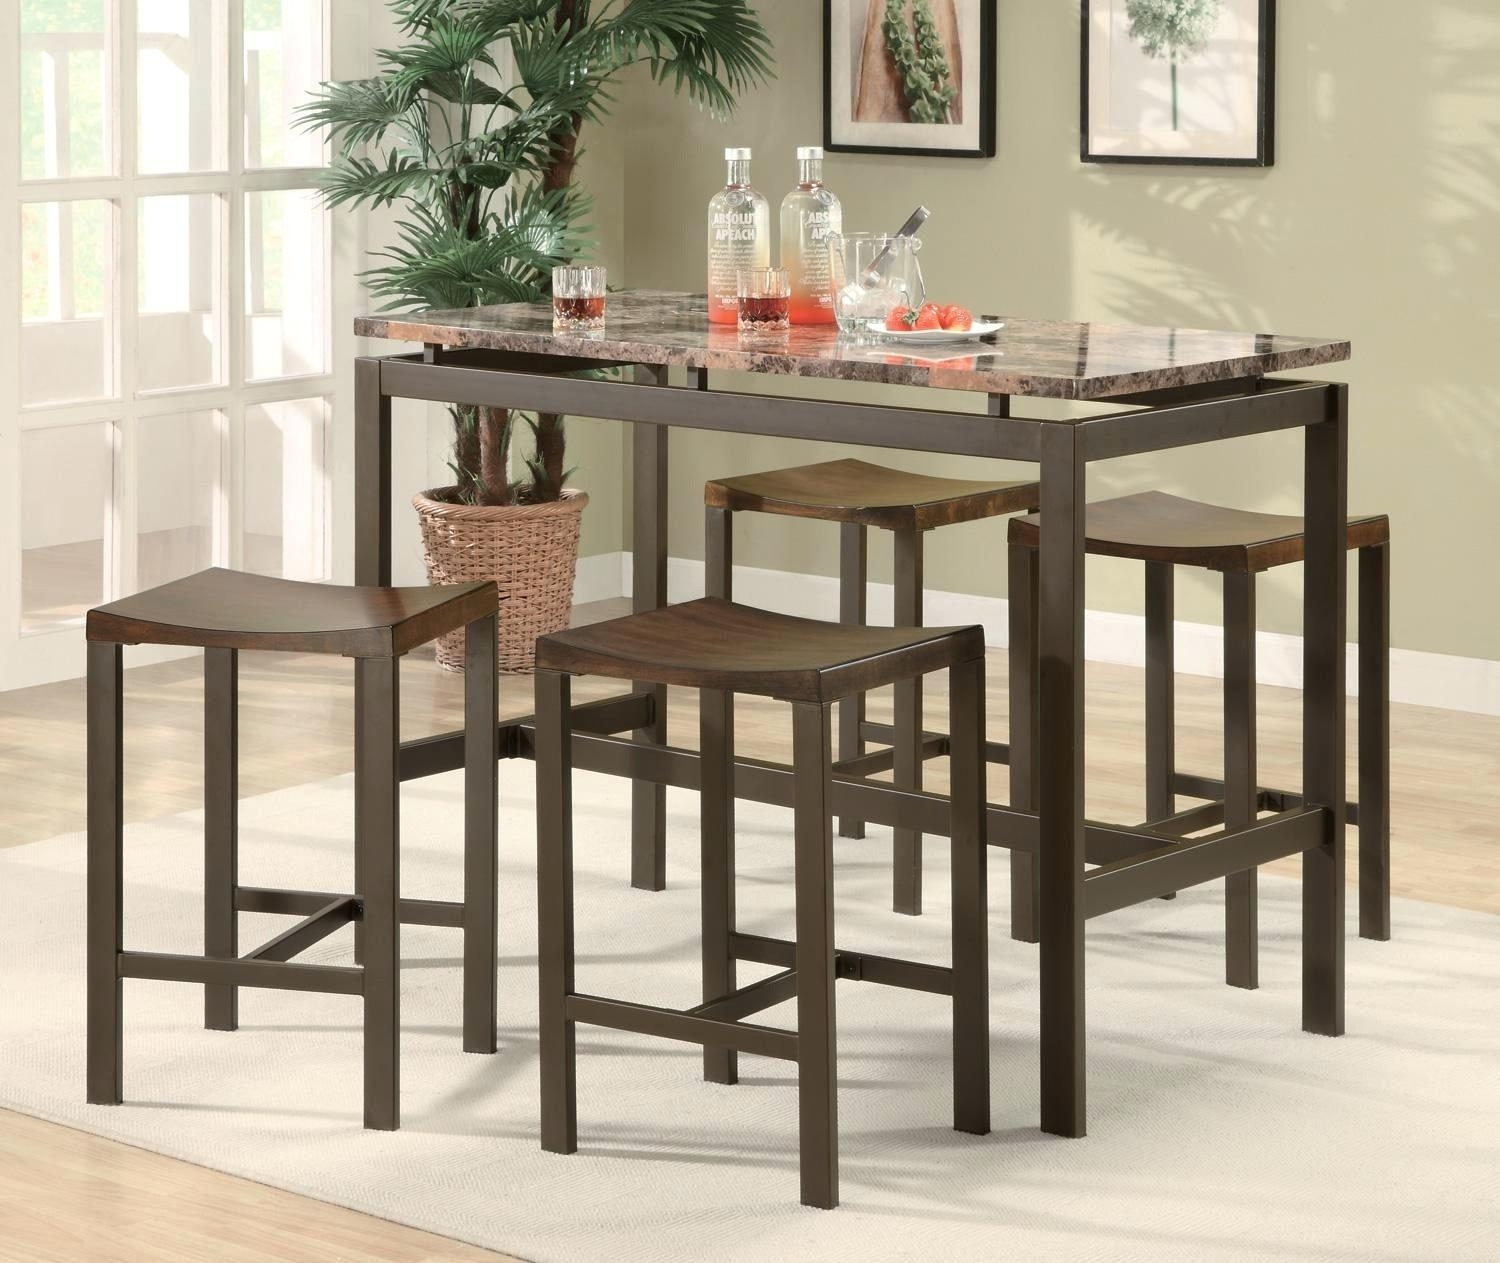 Hyland Counter Height Dining Room Table – Ocane Within Best And Newest Hyland 5 Piece Counter Sets With Stools (Image 10 of 20)